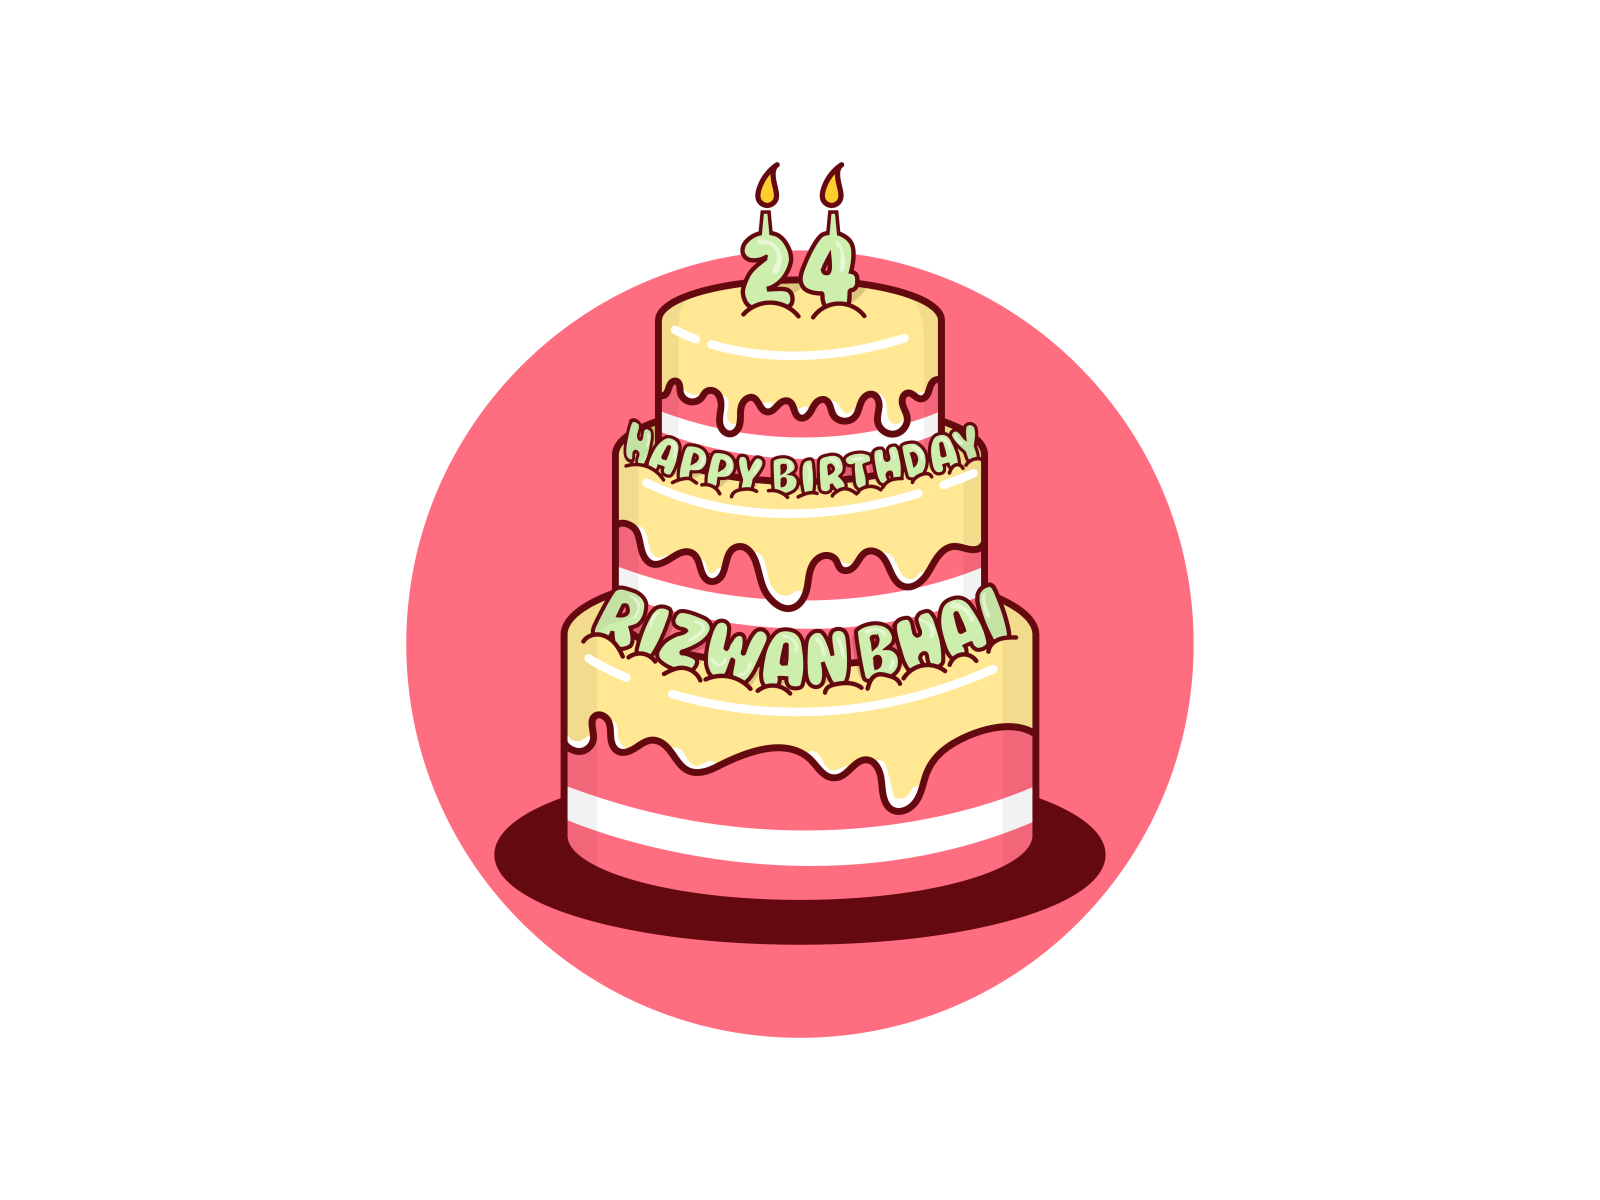 Astonishing Birthday Cake Vector By Abdul Rahman On Dribbble Birthday Cards Printable Trancafe Filternl